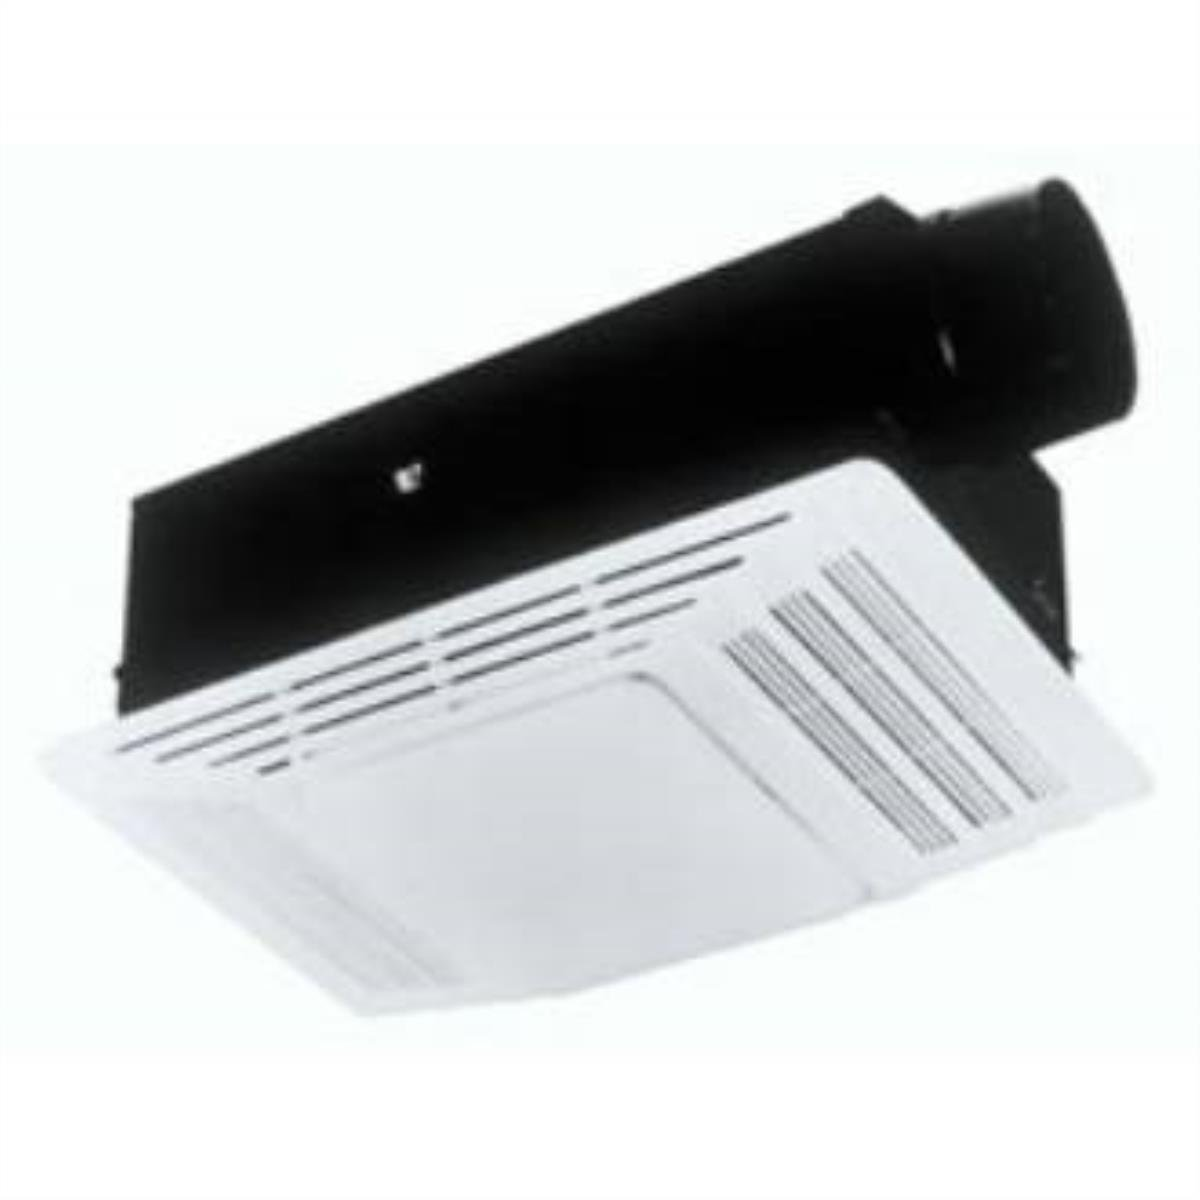 New broan 655 heater and heater bath fan with light for Heat bathroom